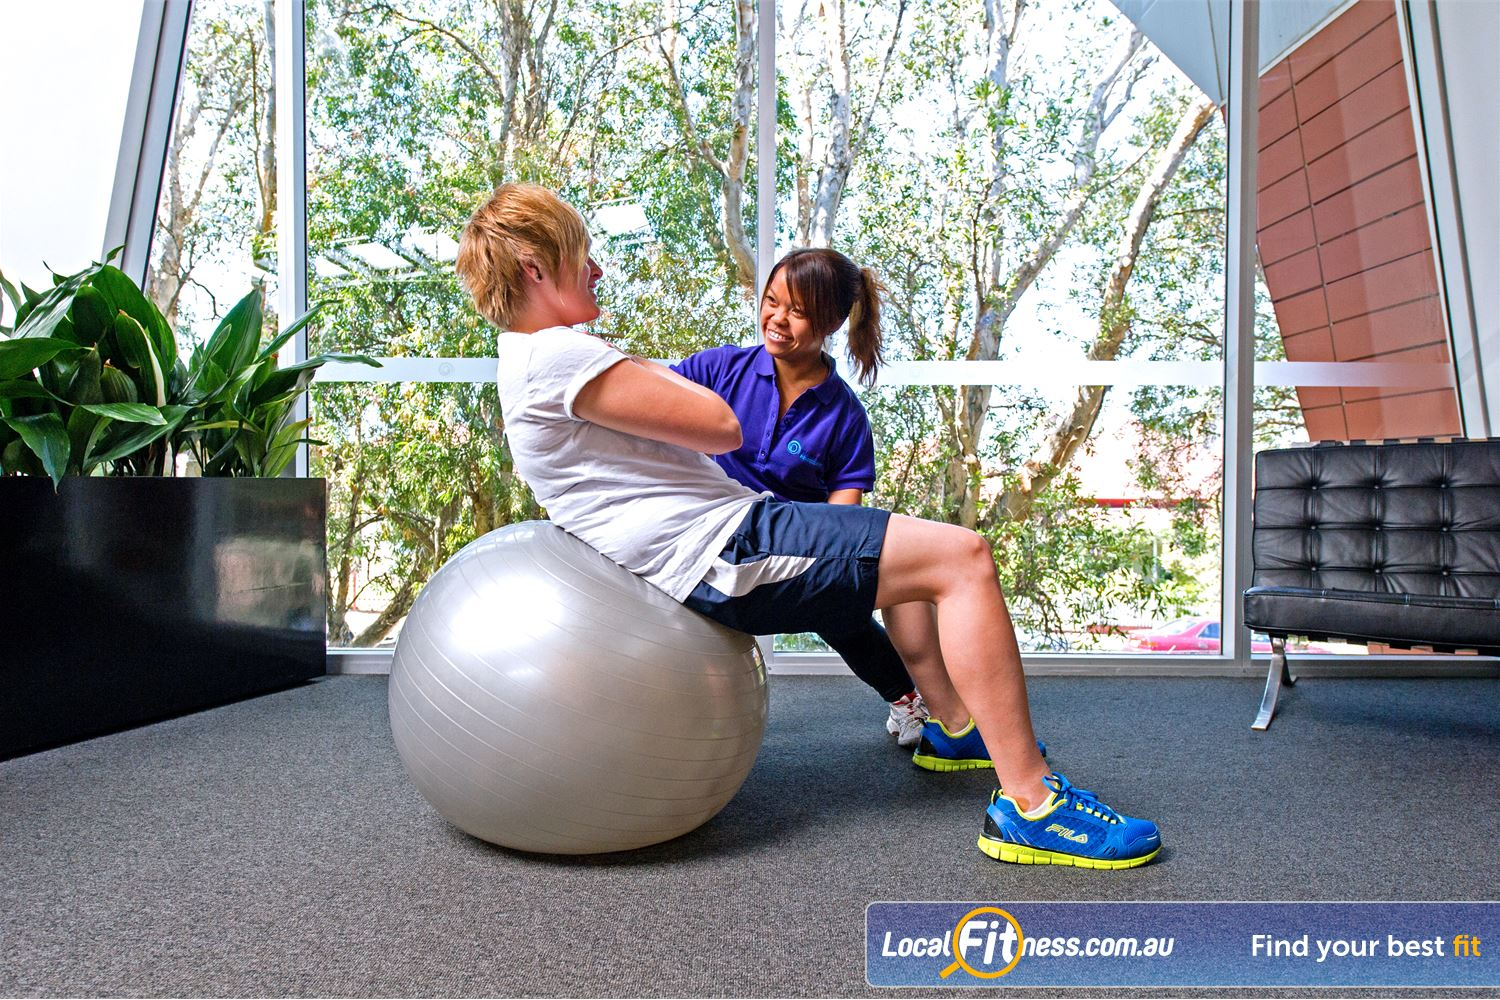 Annette Kellerman Aquatic Centre Near Arncliffe Marrickville personal training is suitable for all ages and abilities.